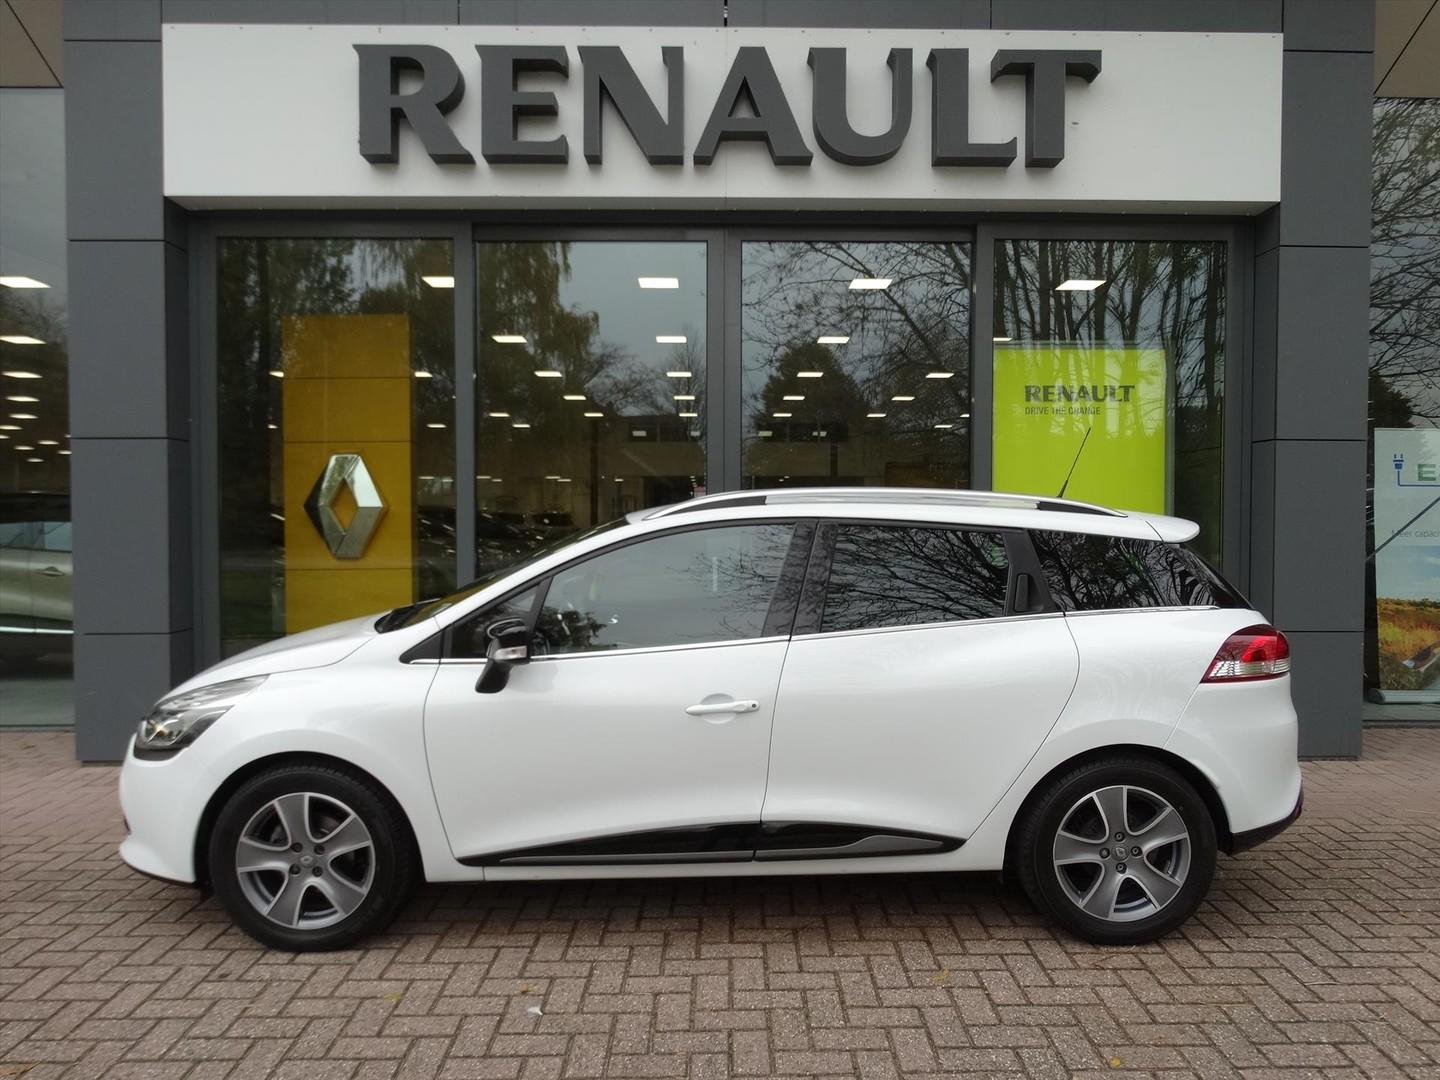 Renault Clio Iv estate tce 90 pk night & day (navigatiesysteem)